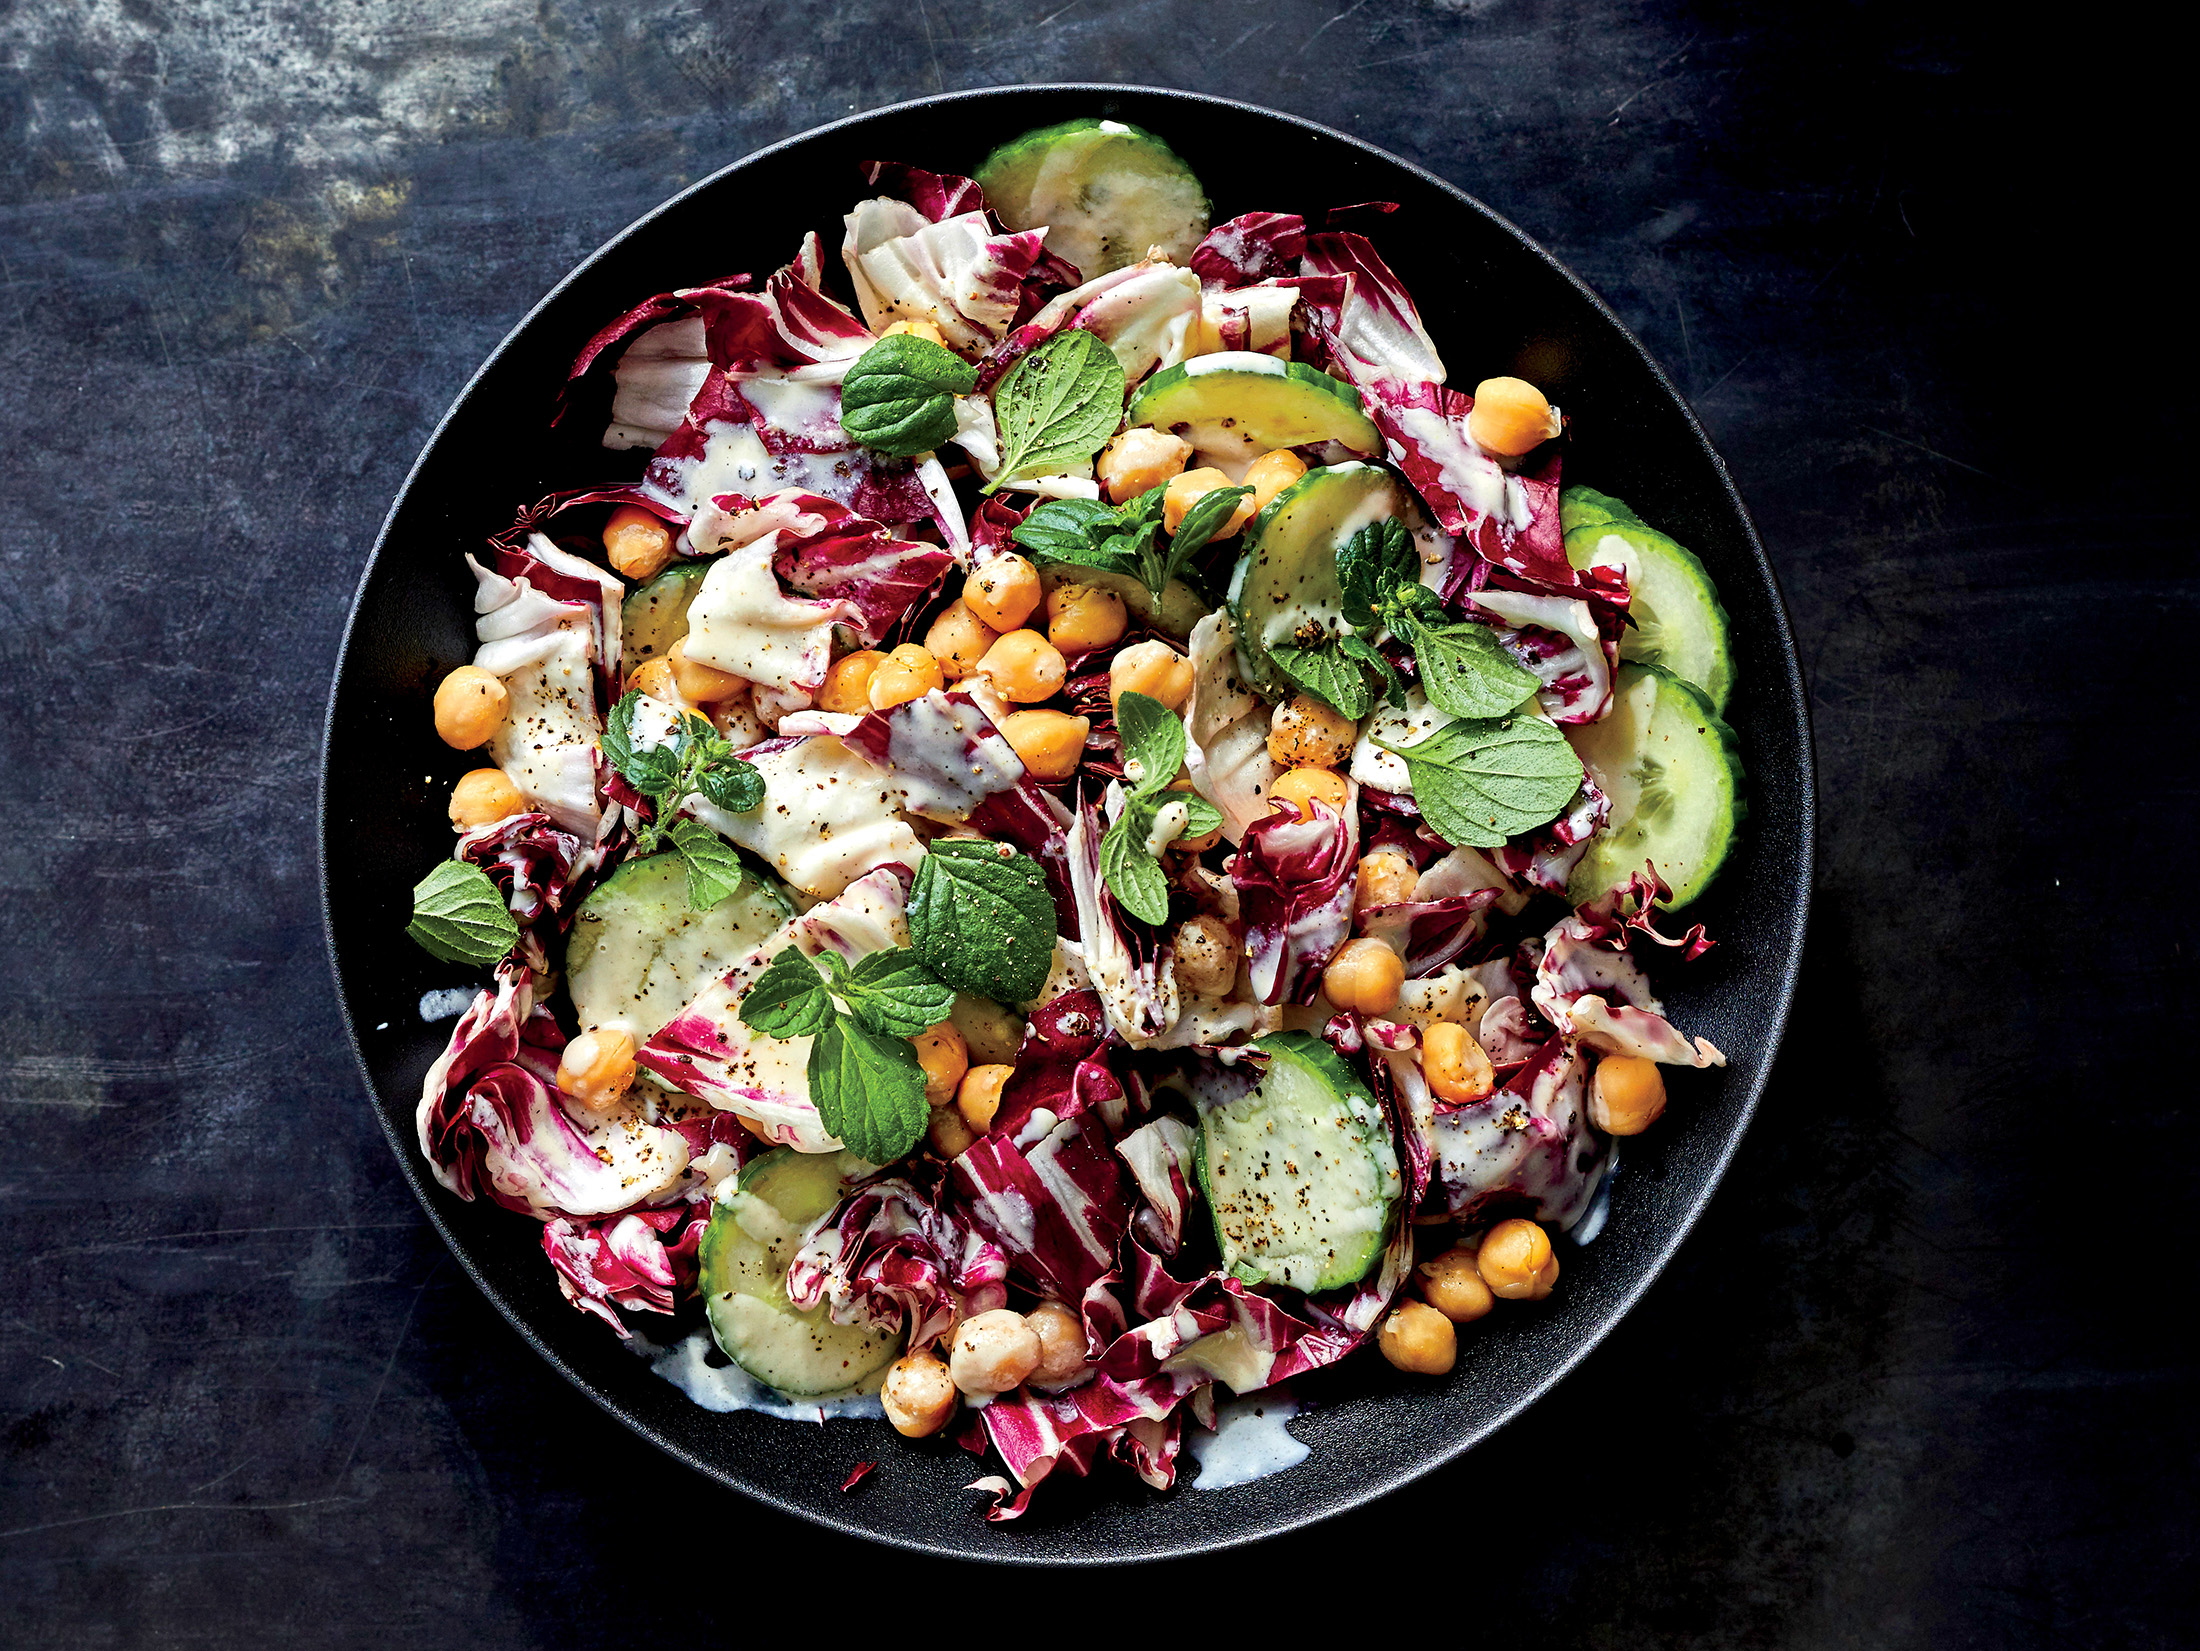 Radicchio and Chickpea Salad with Lemon-tahini Vinaigrette